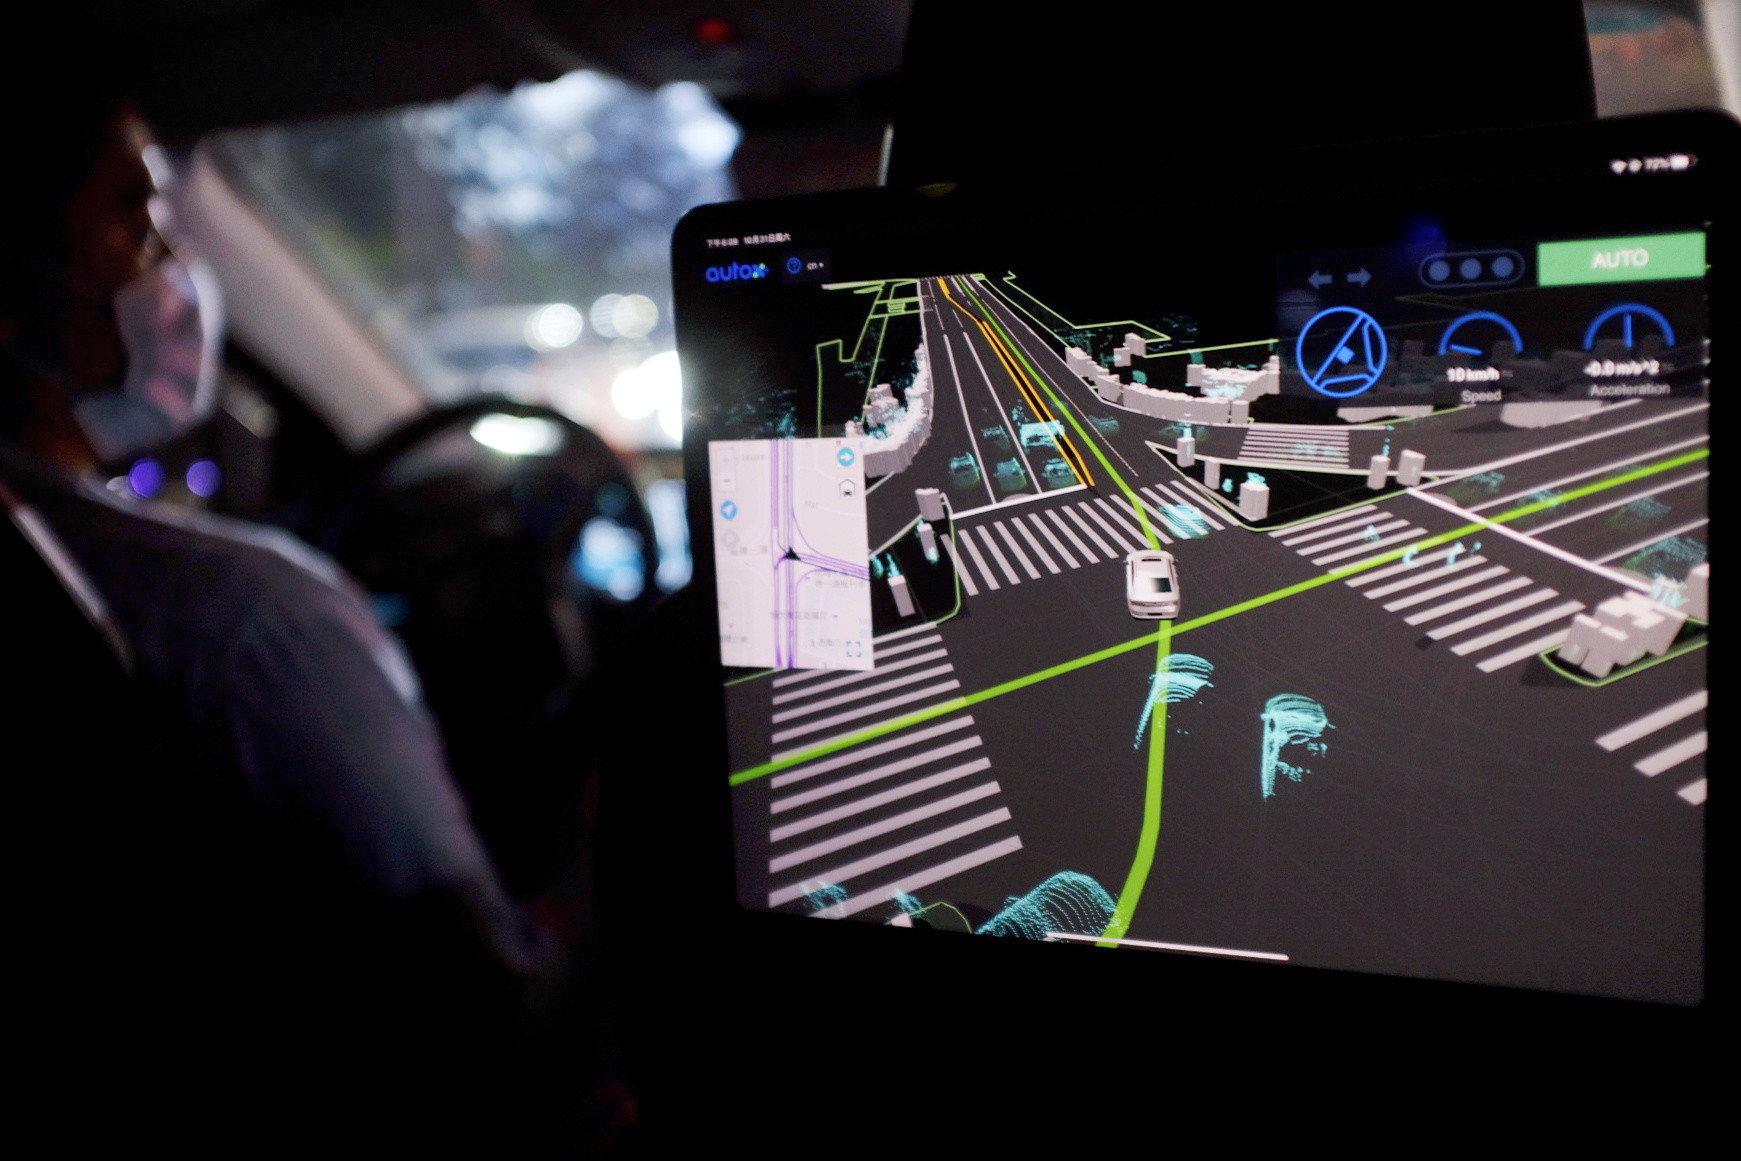 A screen showing a car's driving route is seen in a test vehicle by Alibaba-backed autonomous driving startup AutoX, in the city center of Shenzhen, Guangdong province, China October 31, 2020. Picture taken October 31, 2020. REUTERS/Yilei Sun - RC2VUJ942305